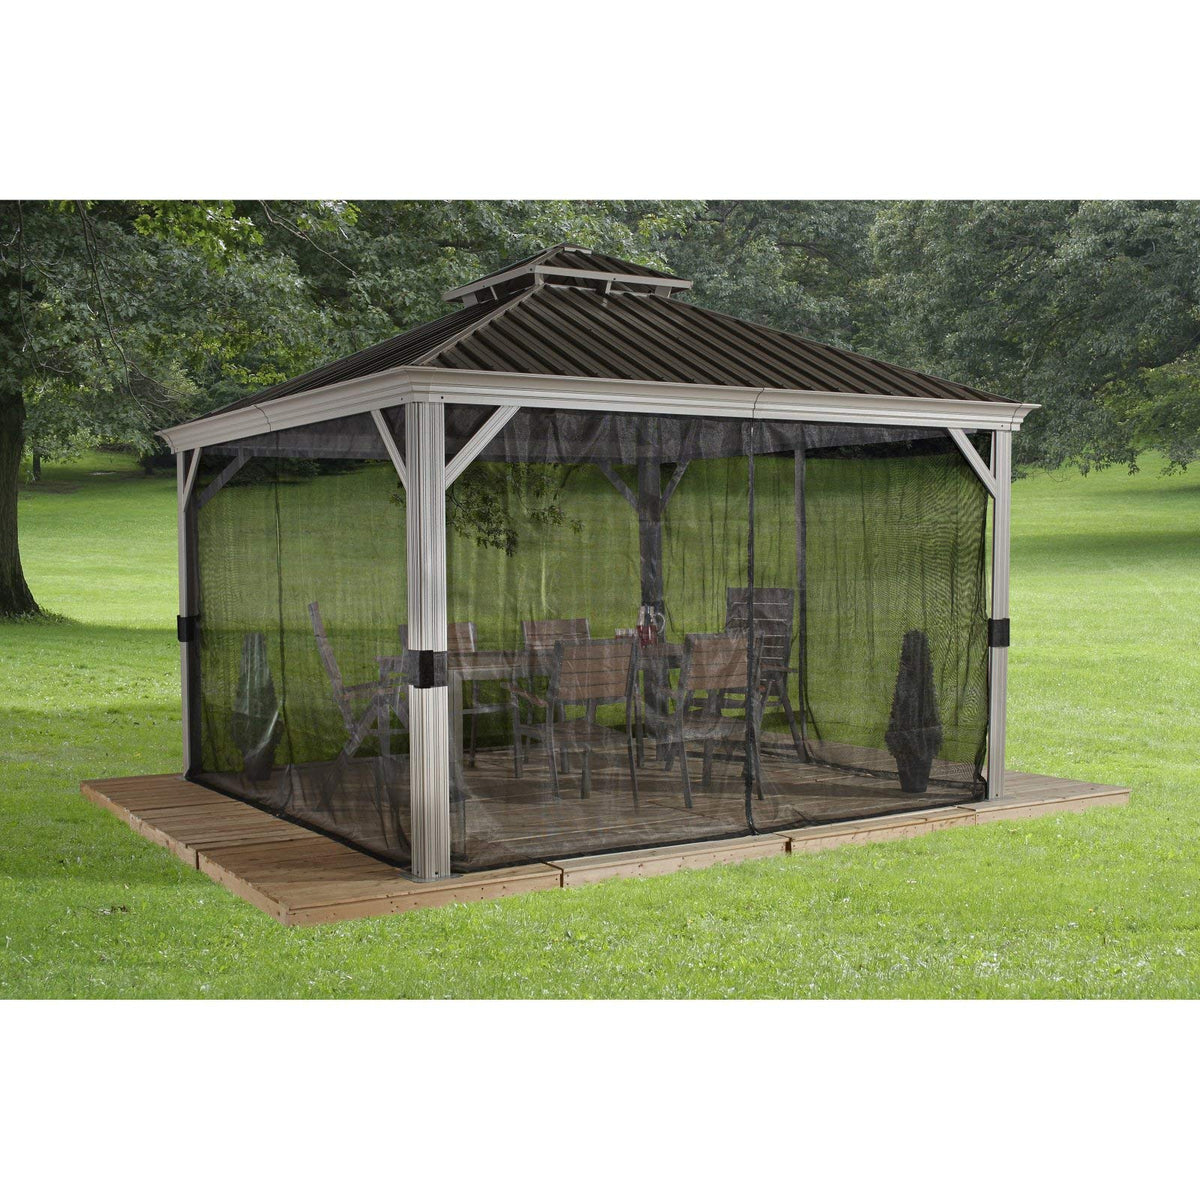 Messina # 43L Sun Shelter 12'x12 'Galvanized Steel roof, mesh Screen